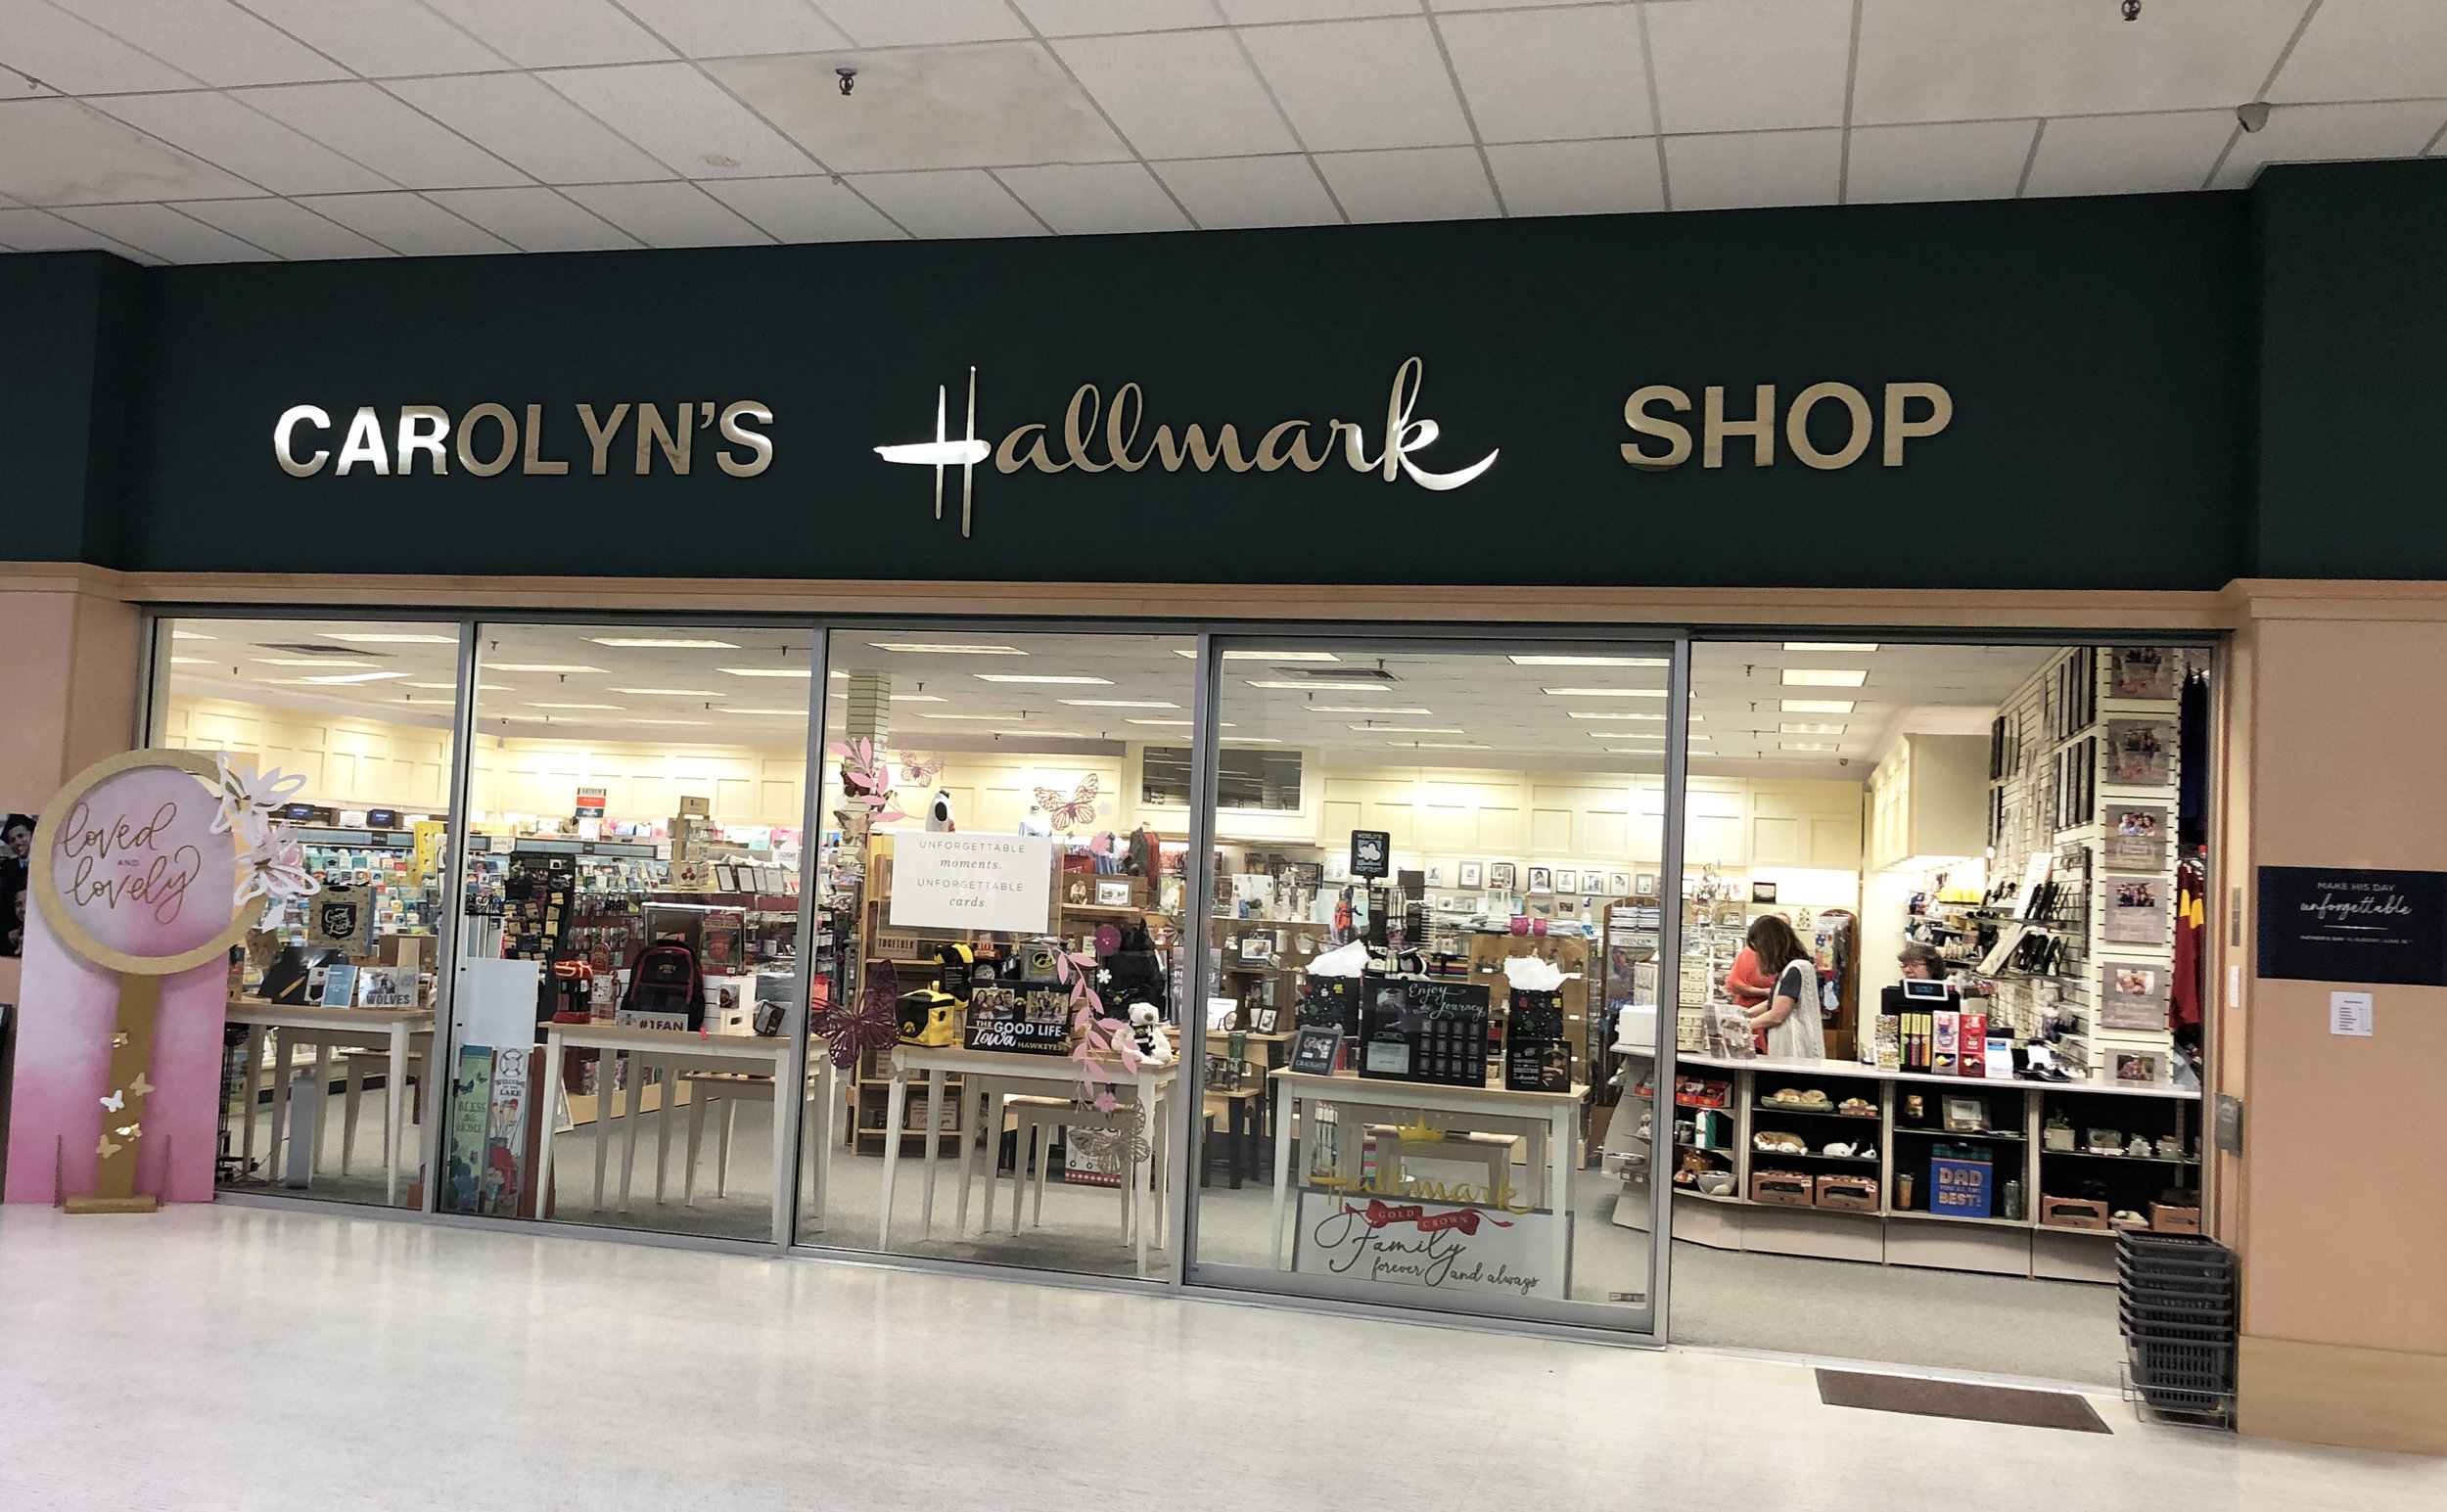 Carolyn's Hallmark: - Delightful gifts, cards and much more712-336-5090